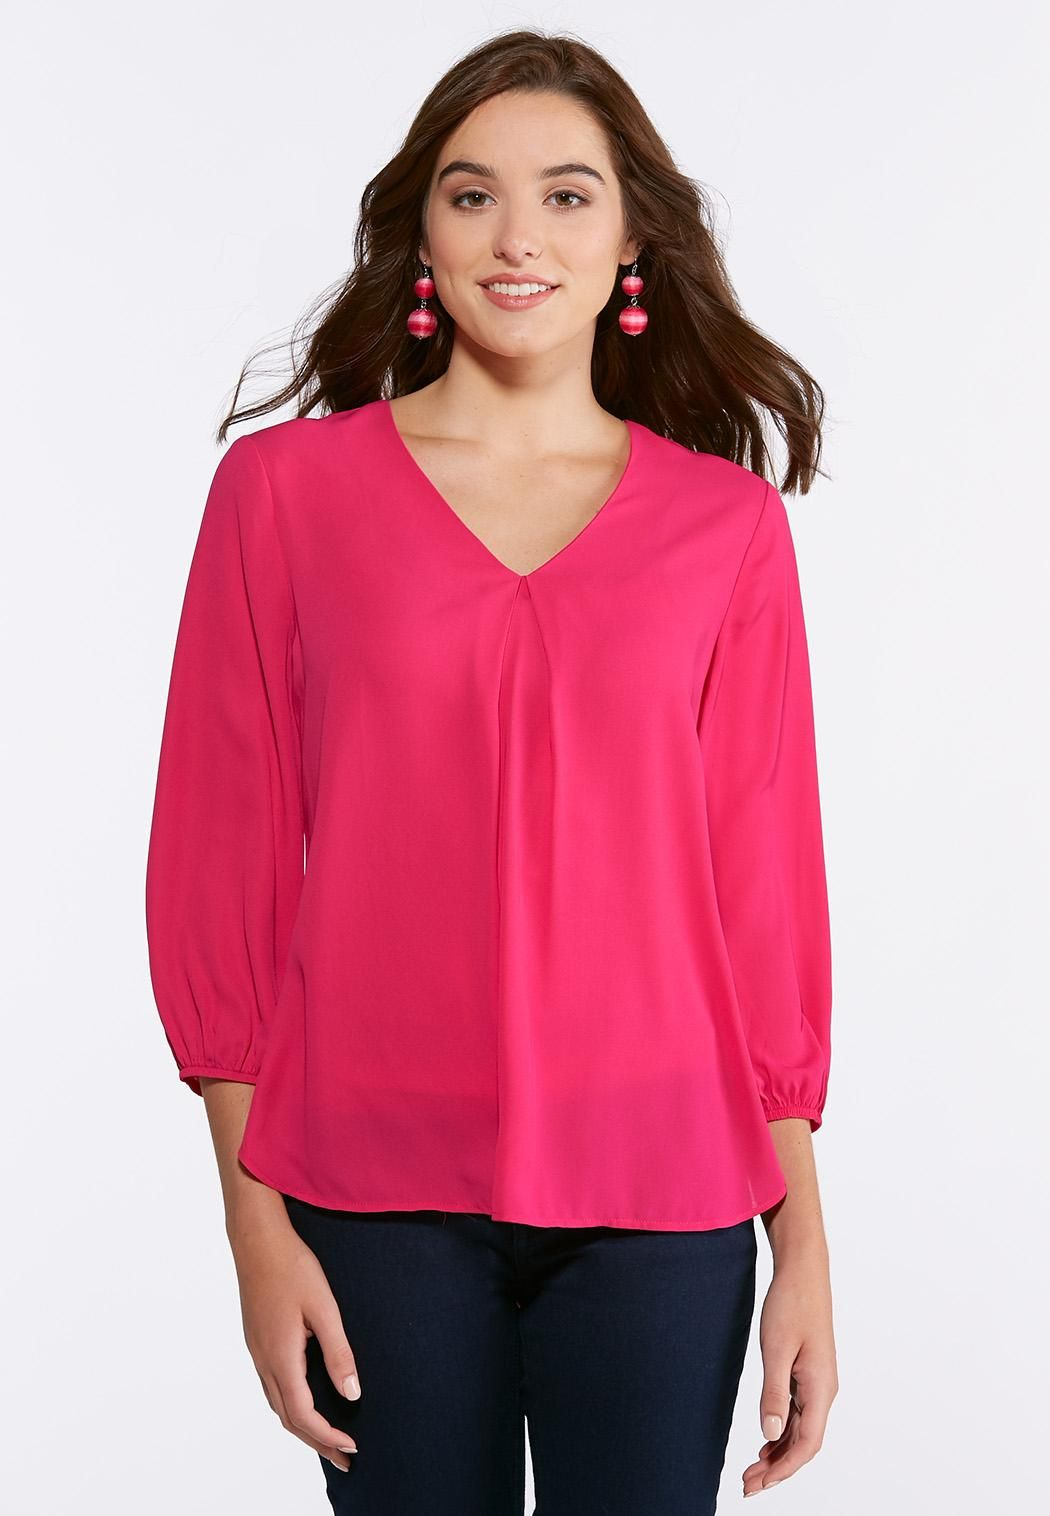 821bfb50e87 Plus Size V-Neck Pleated Blouse Expand your versatile work or play wardrobe  with this lightweight blouse